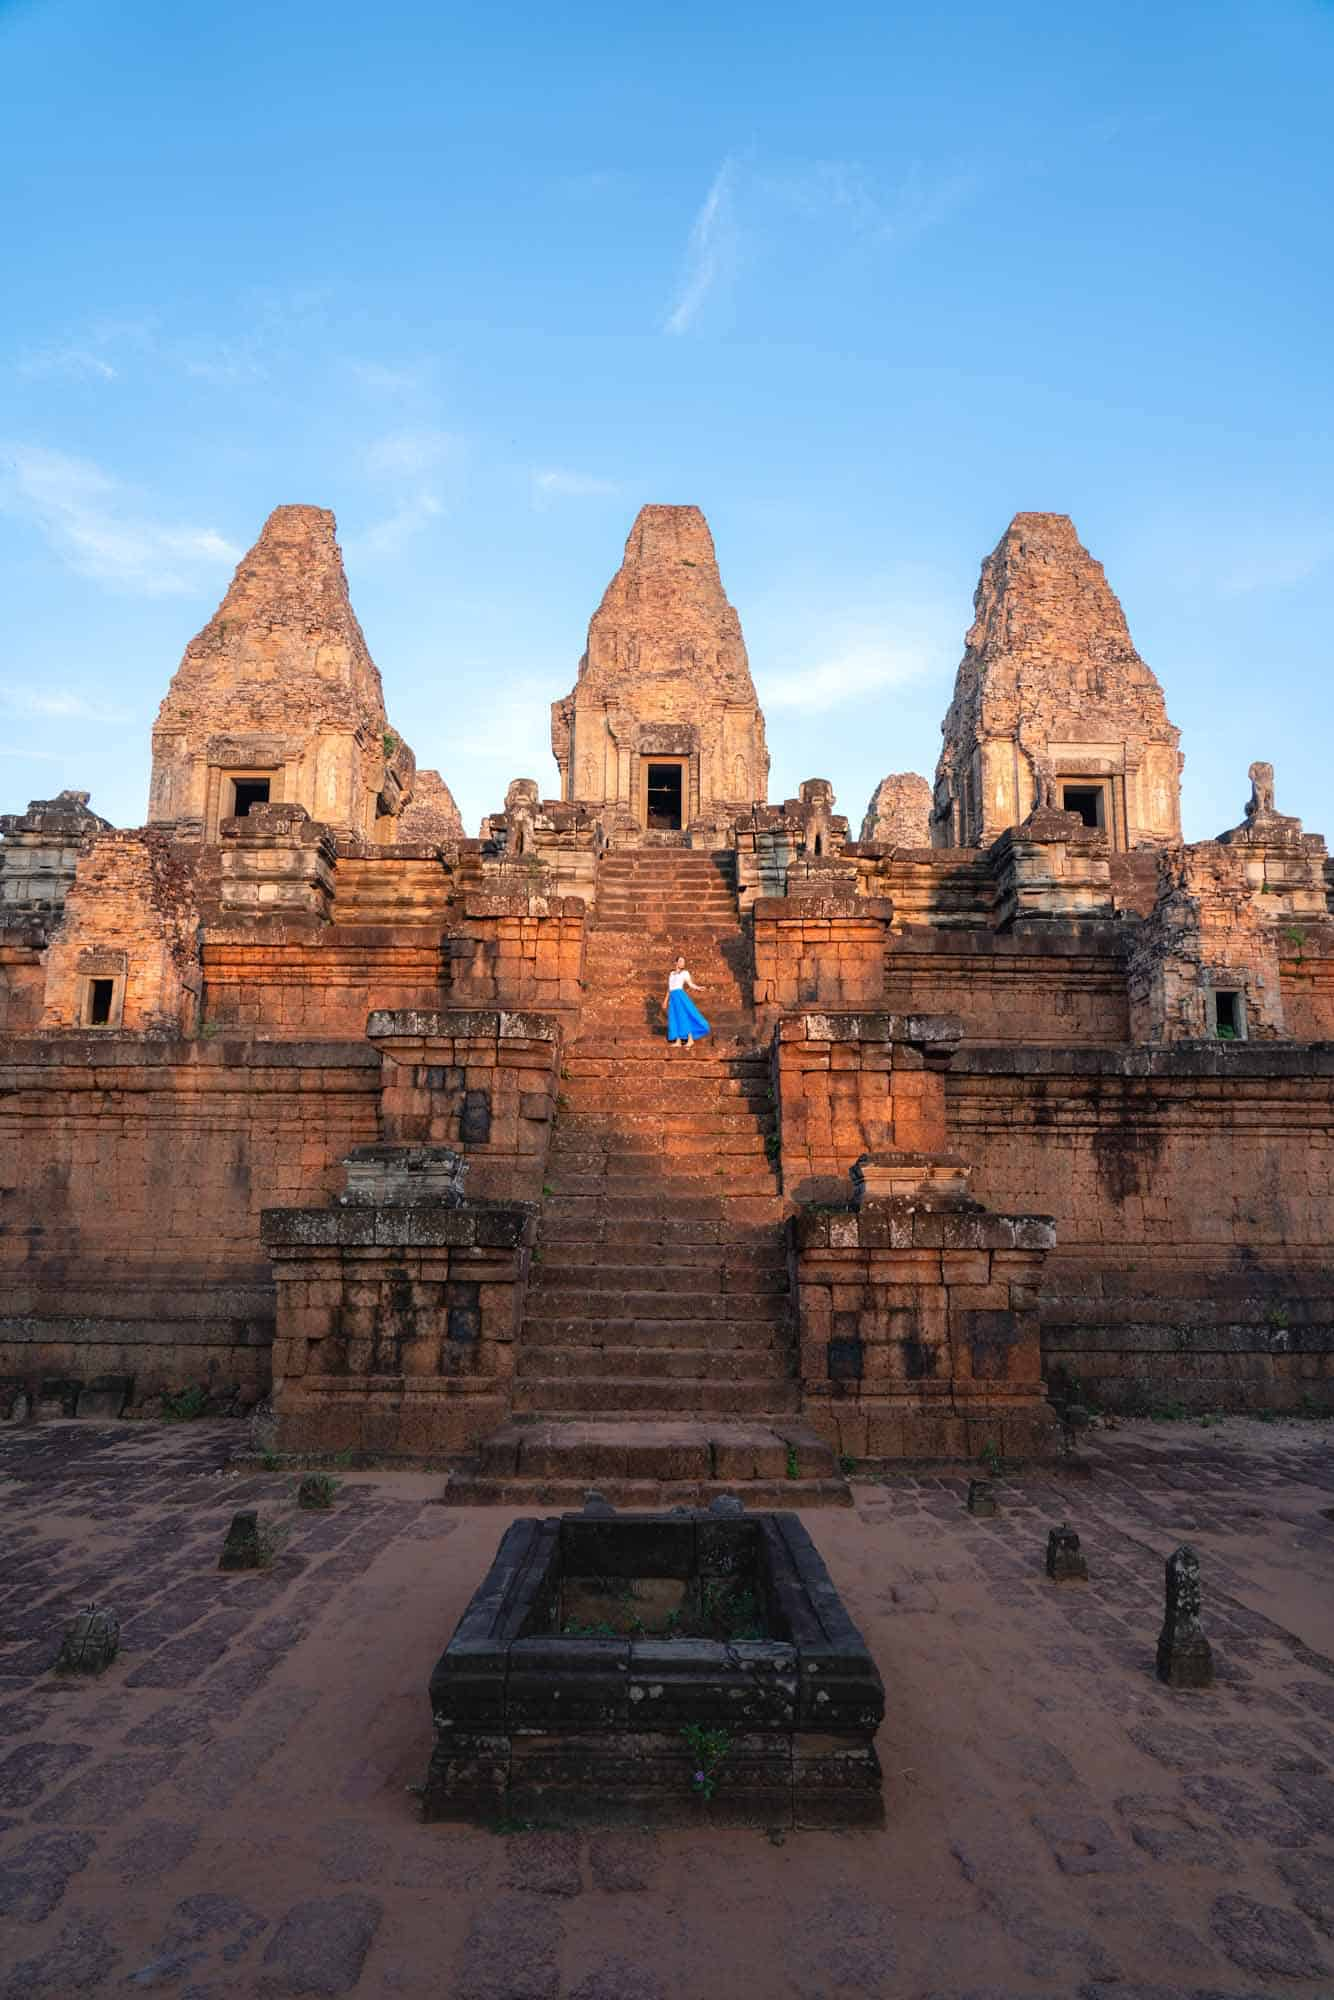 6:05am - Pre Rup Temple just after sunrise.